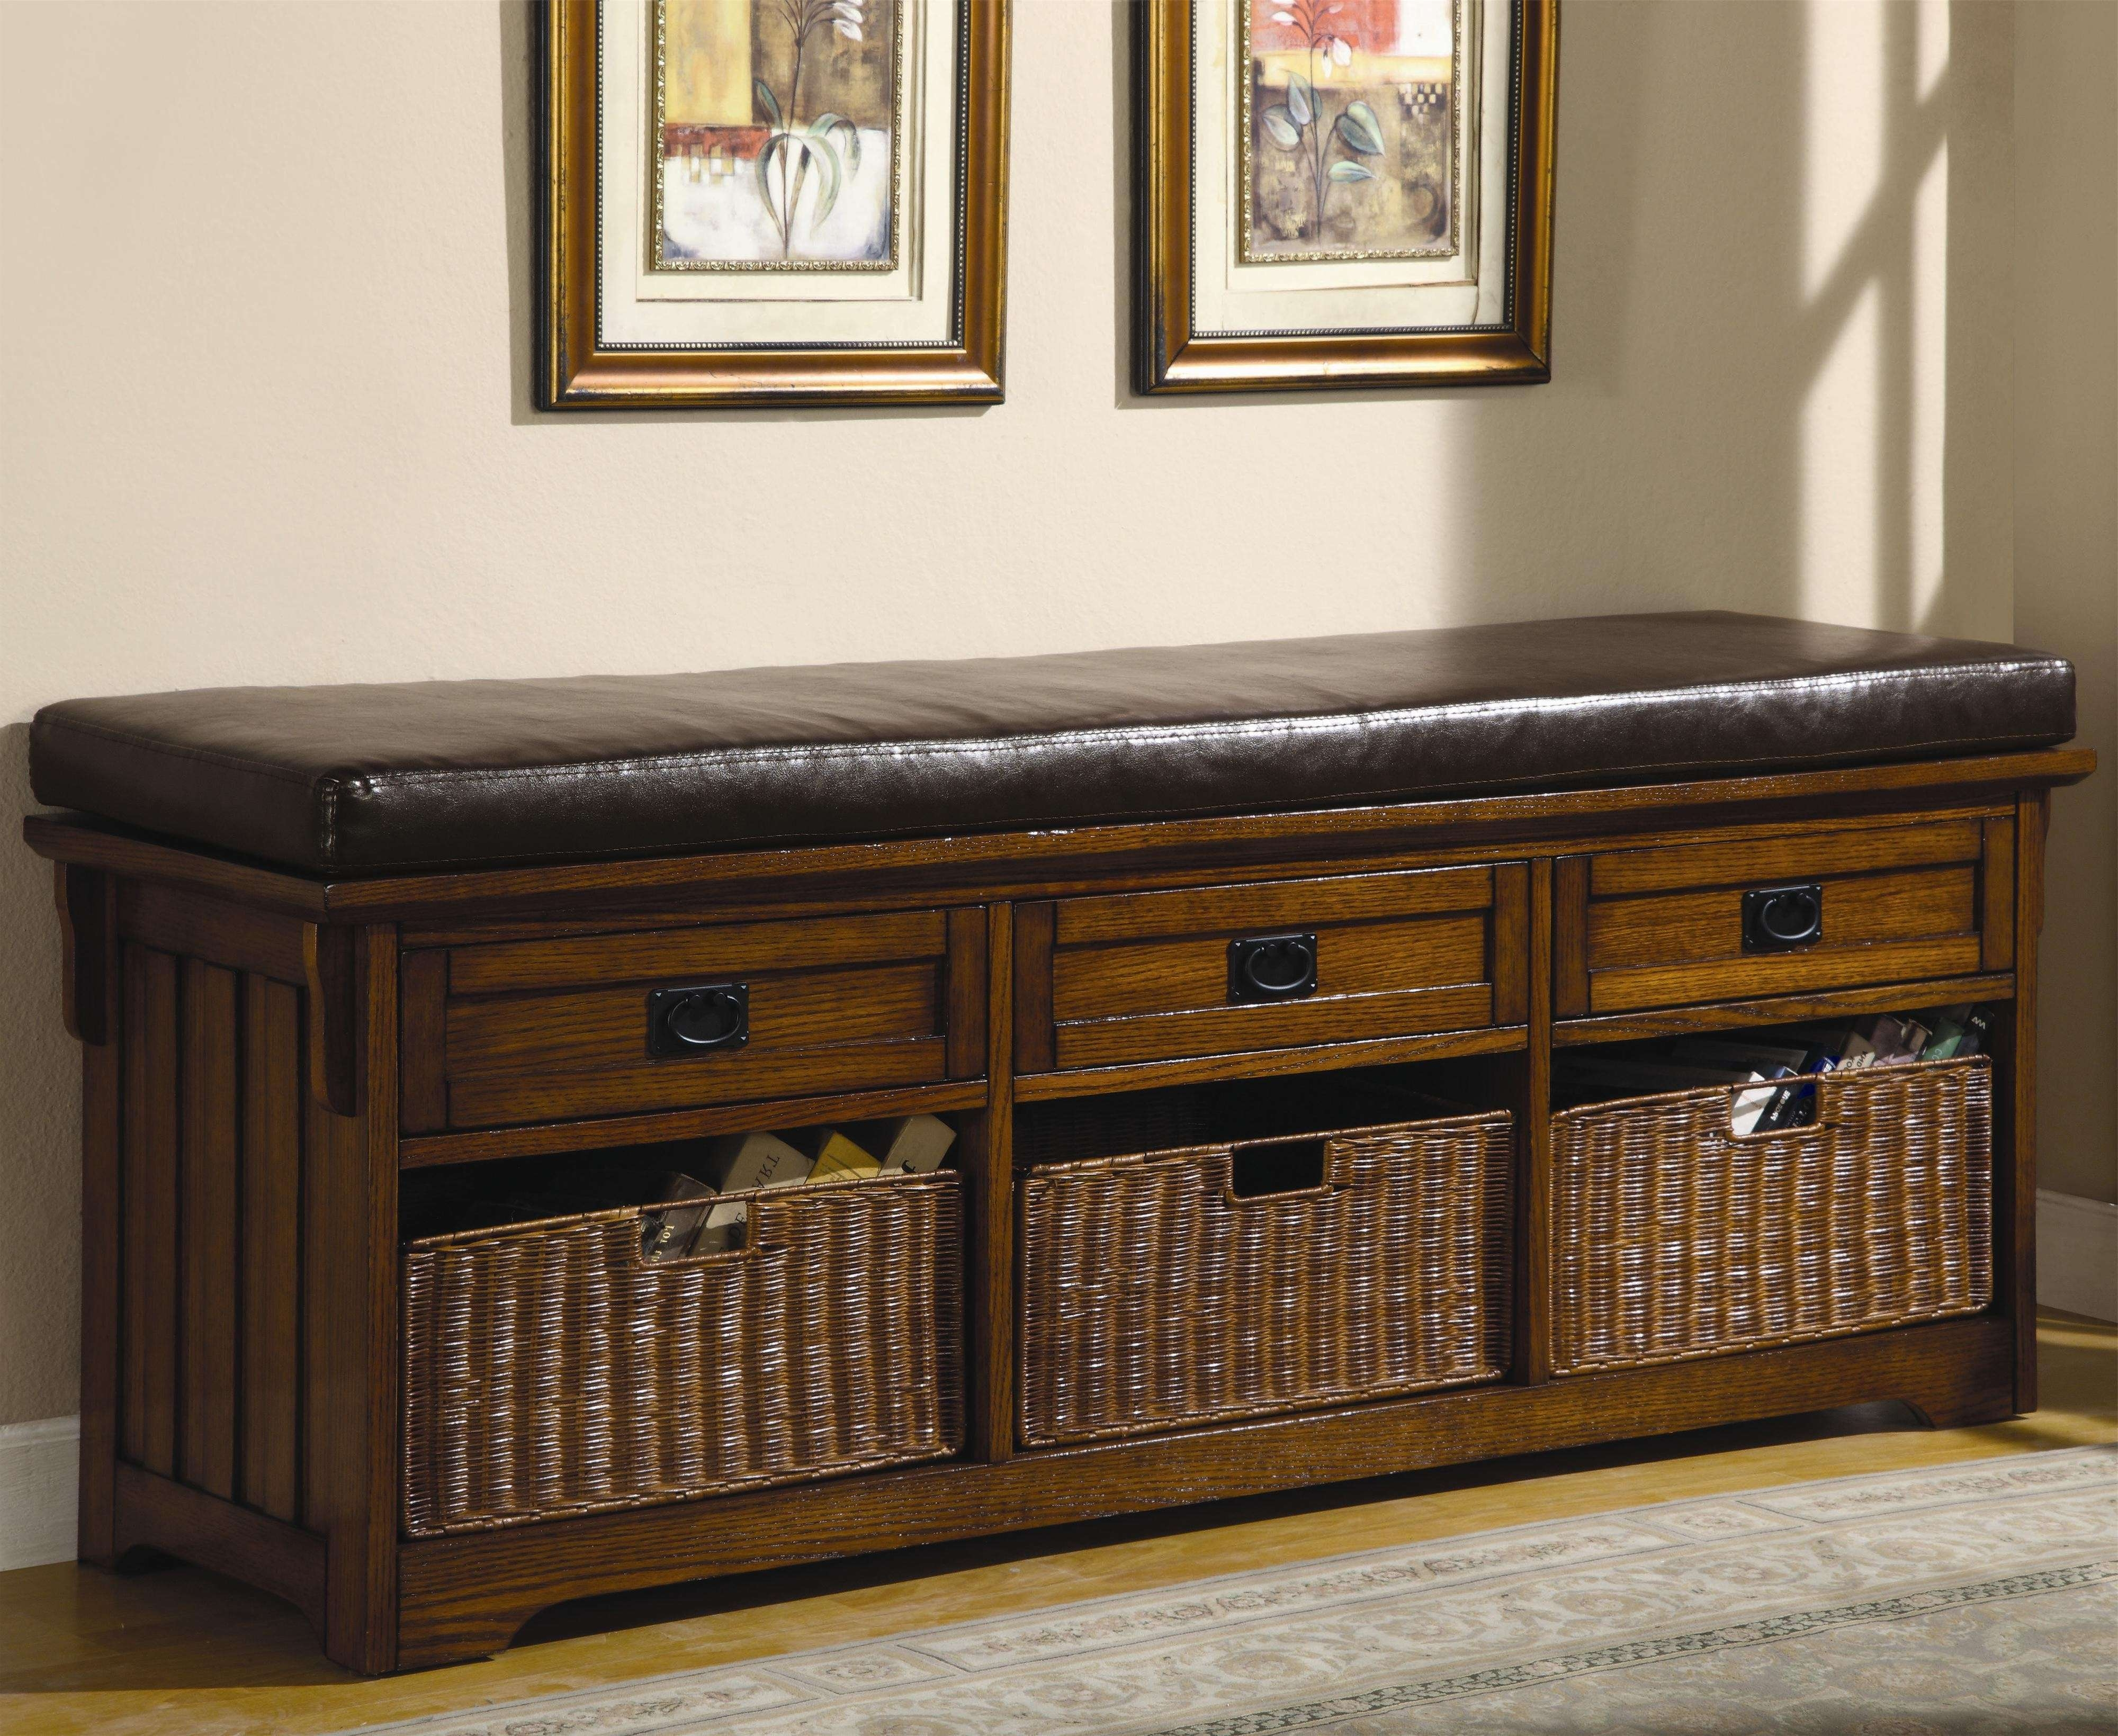 Benches Large Storage Bench With Baskets Lowest Price – Sofa Pertaining To Tv Stands With Storage Baskets (View 13 of 15)